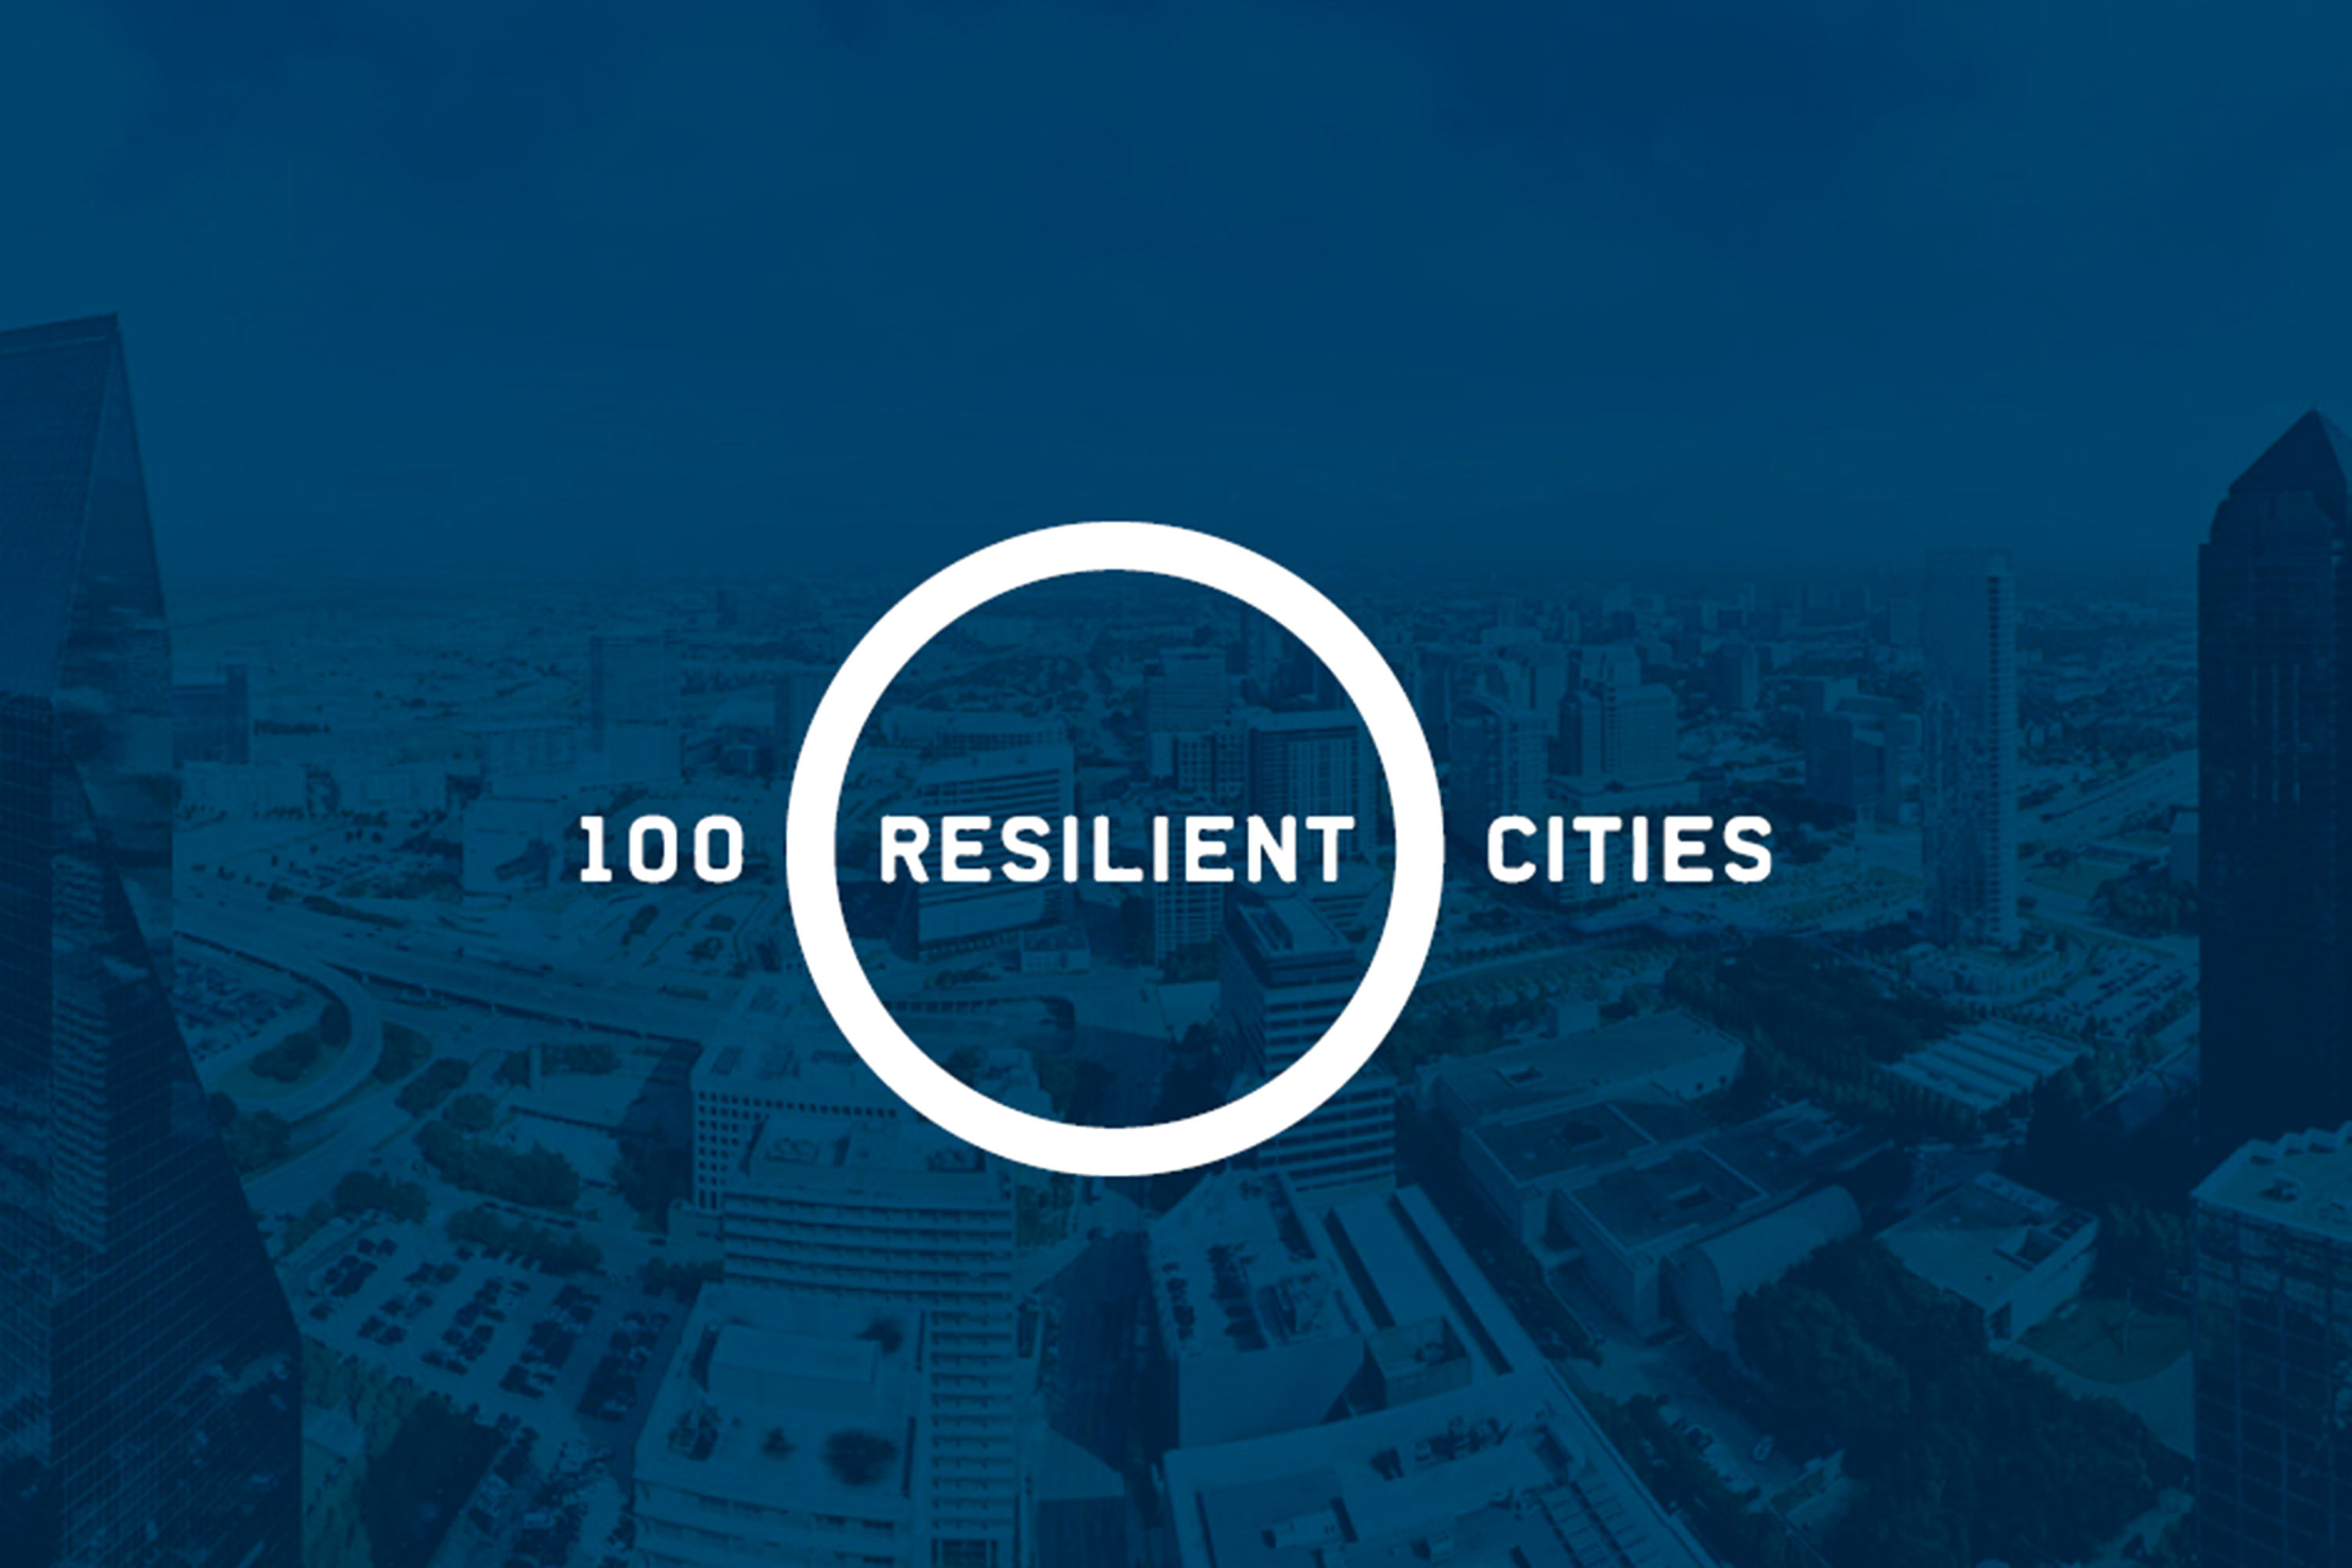 logo1ooresilientcities3000x2000.jpg